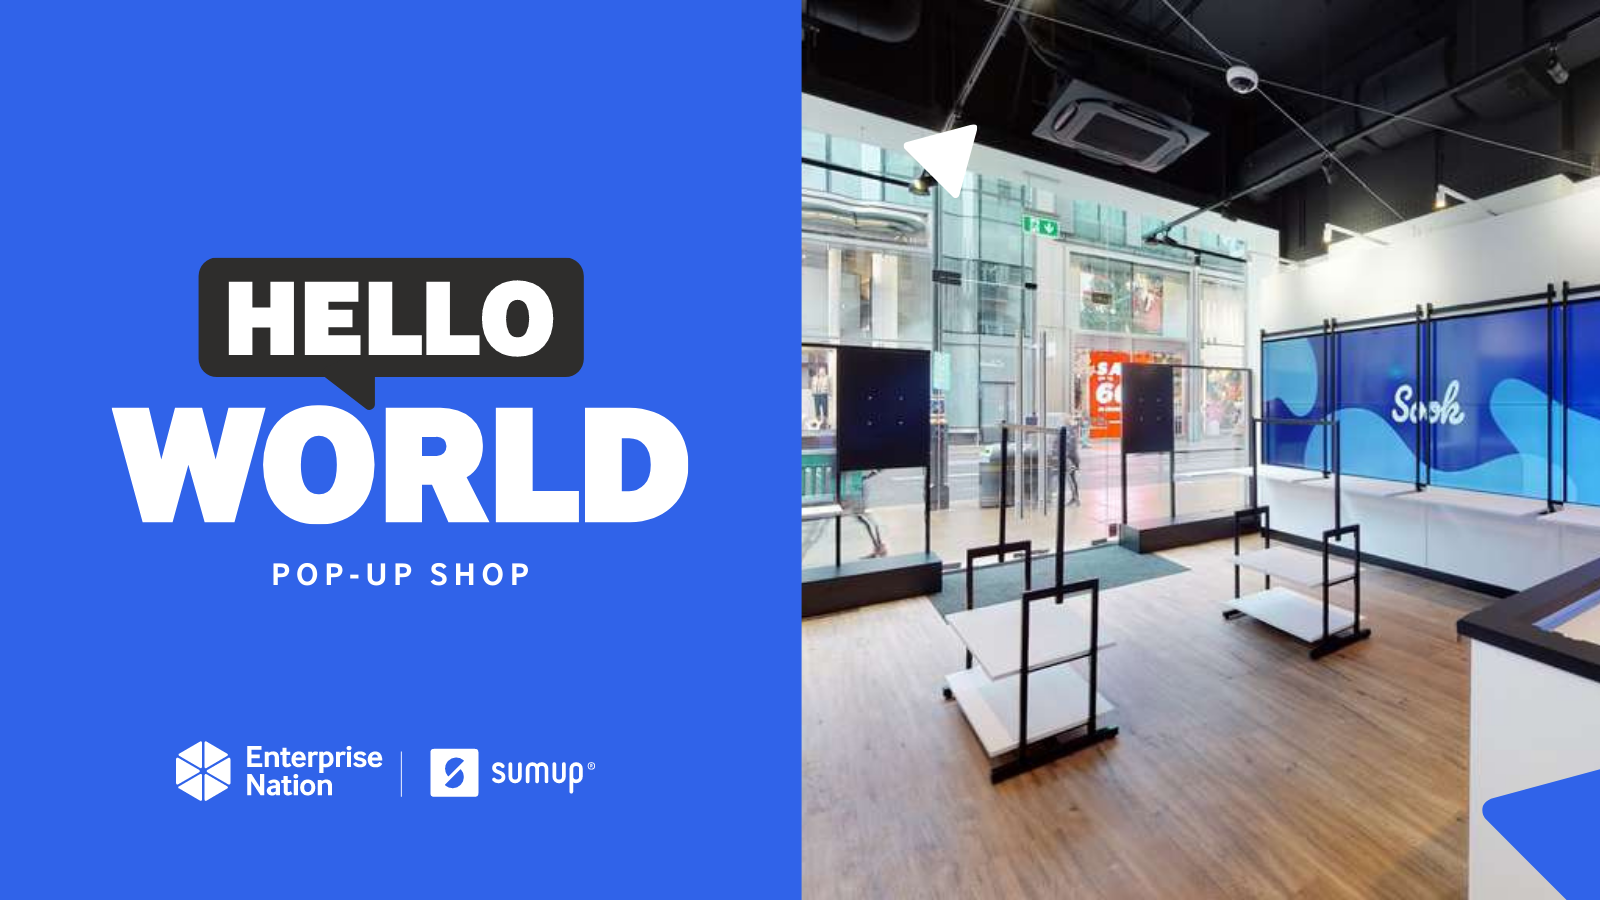 Meet the brands popping up in the Hello, World shop in May